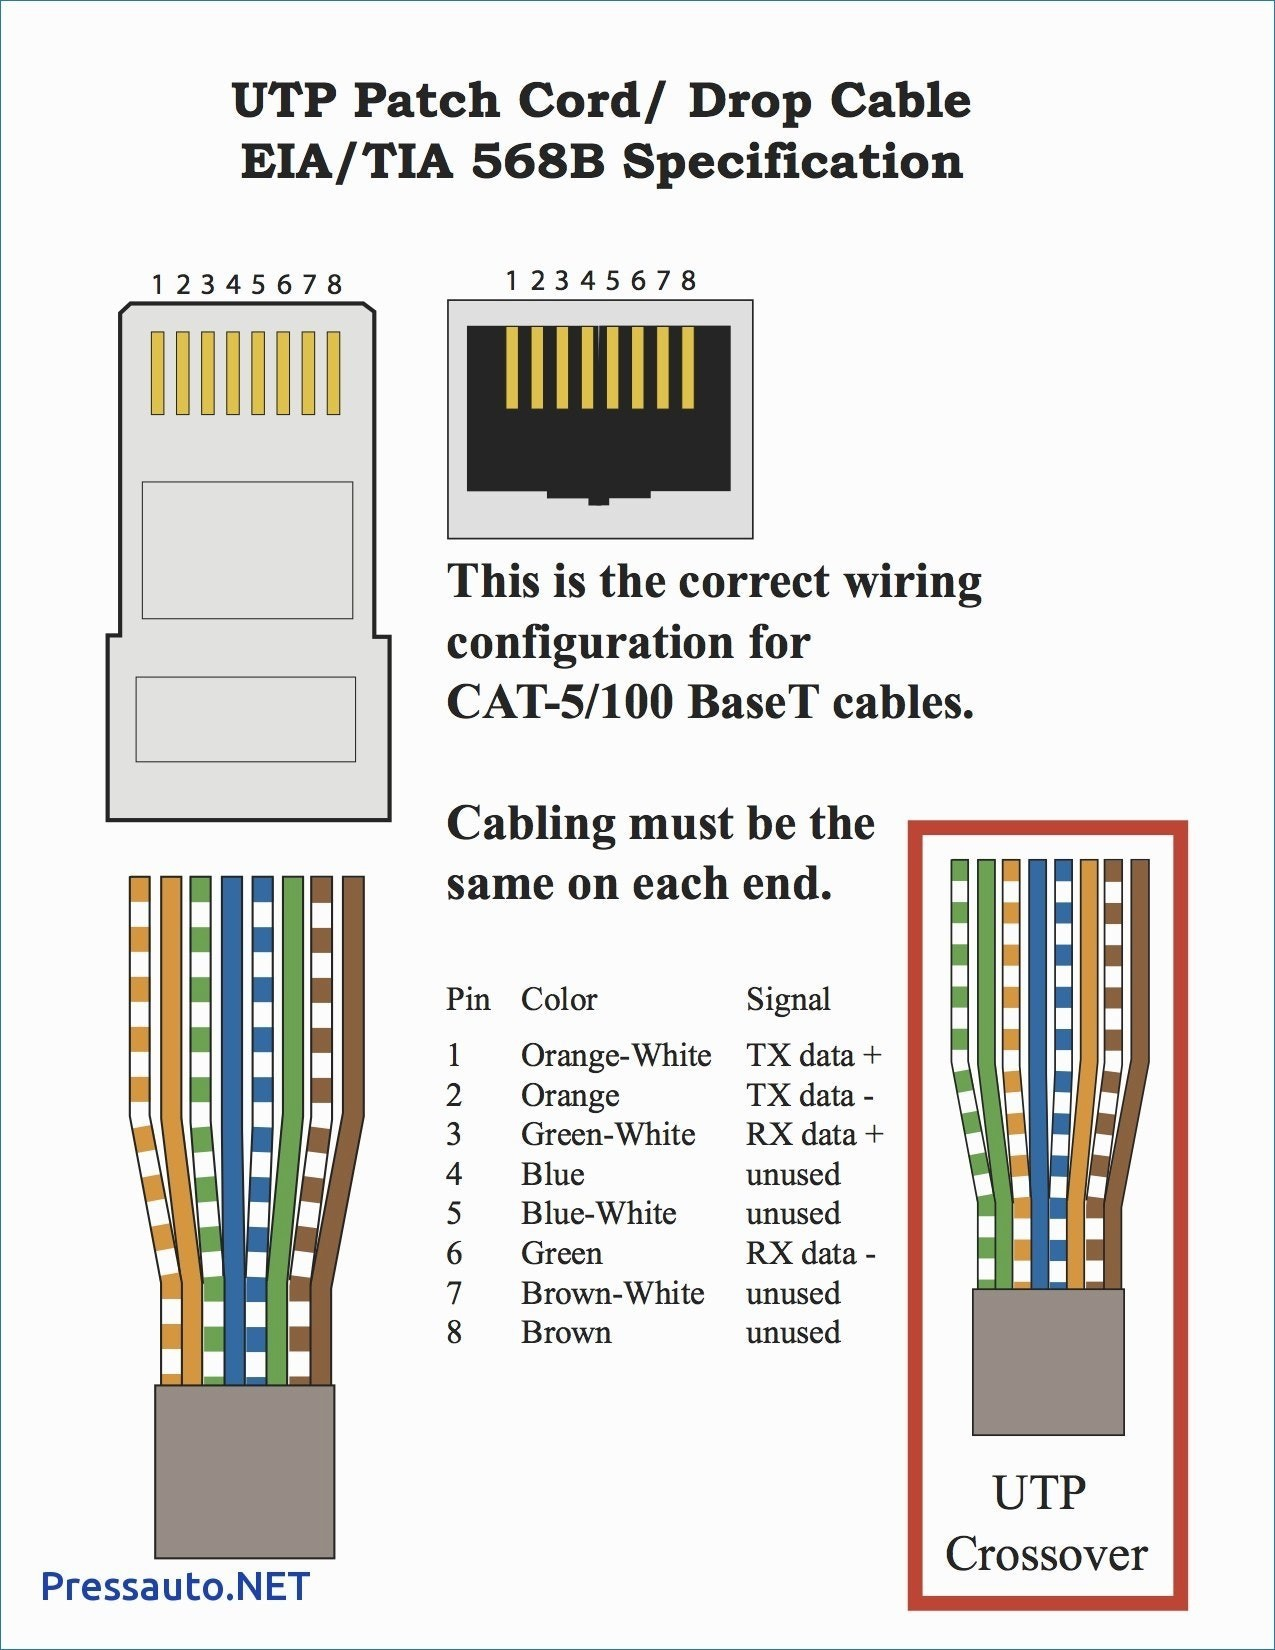 Cat5 jack wiring diagram cat 5 b wiring diagram wiring solutions cat5 jack wiring diagram cat 5 b wiring diagram wiring solutions of cat5 jack wiring diagram asfbconference2016 Gallery